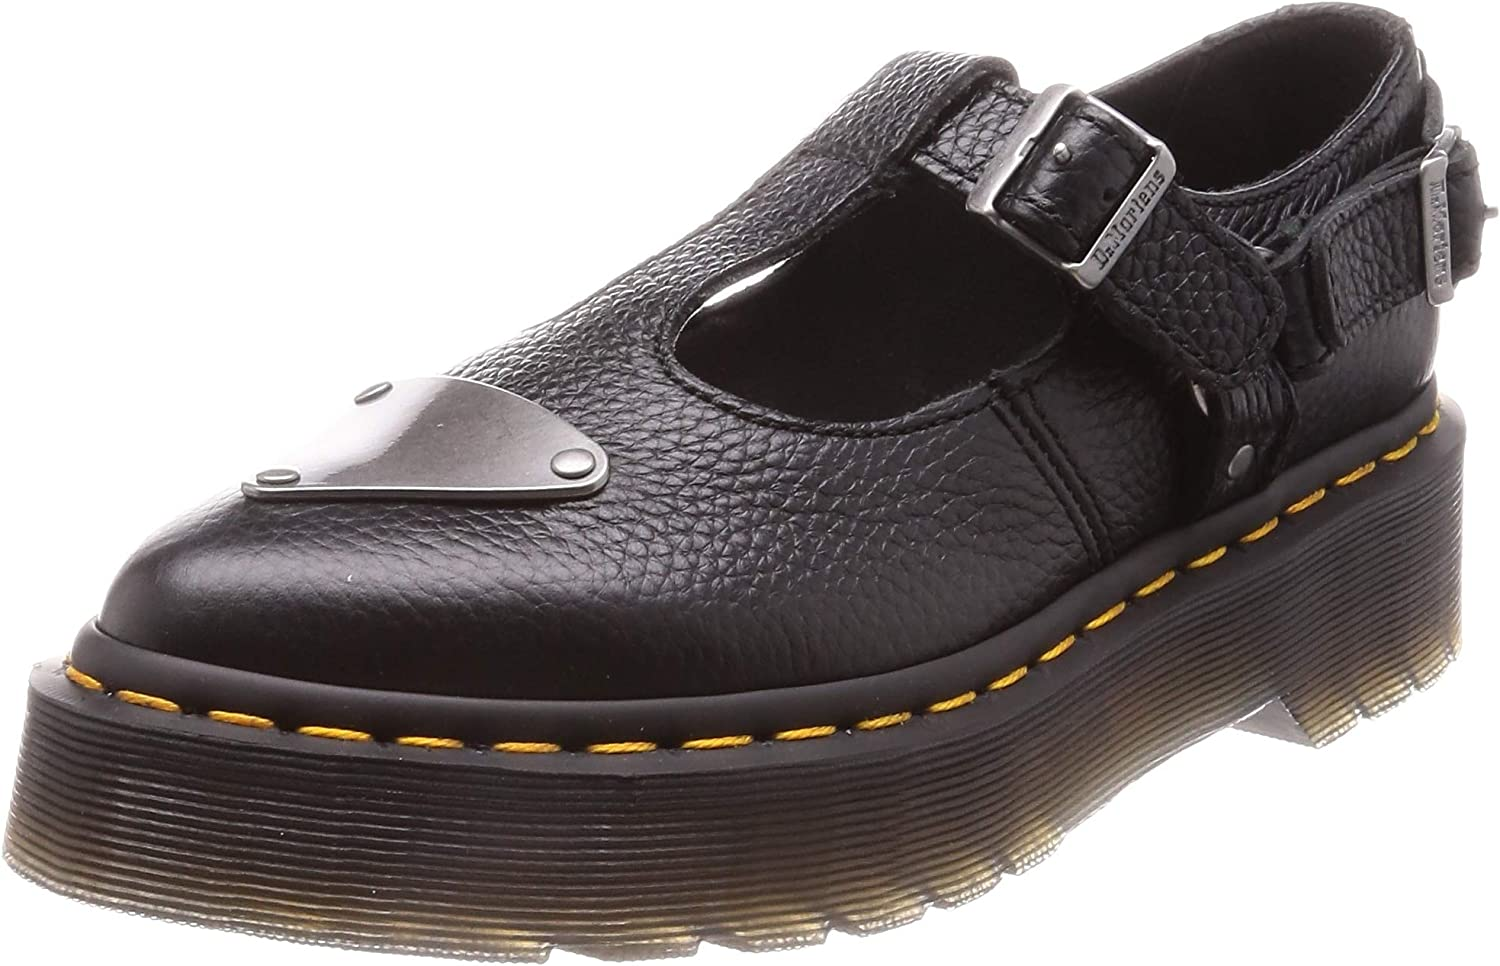 Dr.Martens Womens Caidos Aunt Sally Leather shoes